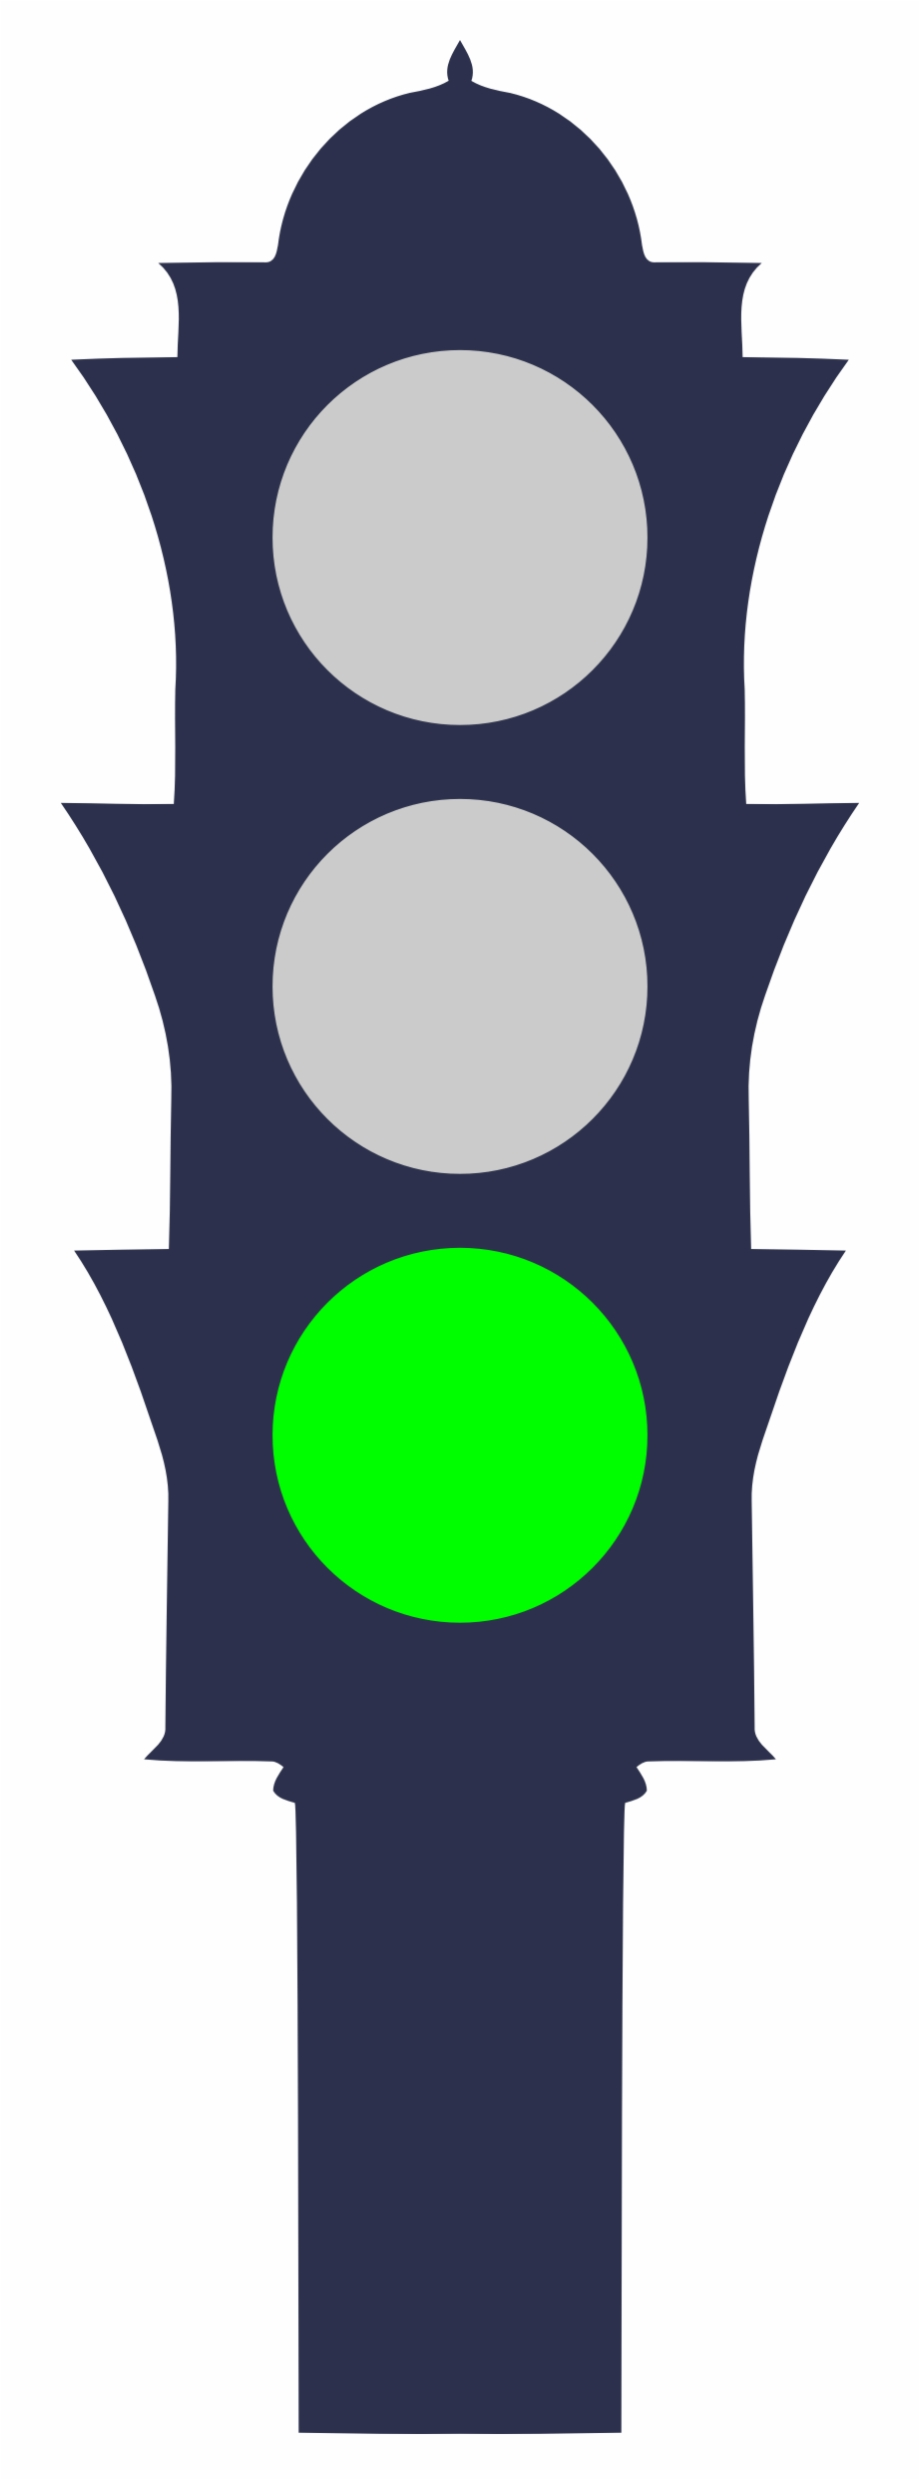 Green light clipart svg library library Traffic Light Green Png - Green Traffic Light Clipart Free PNG ... svg library library